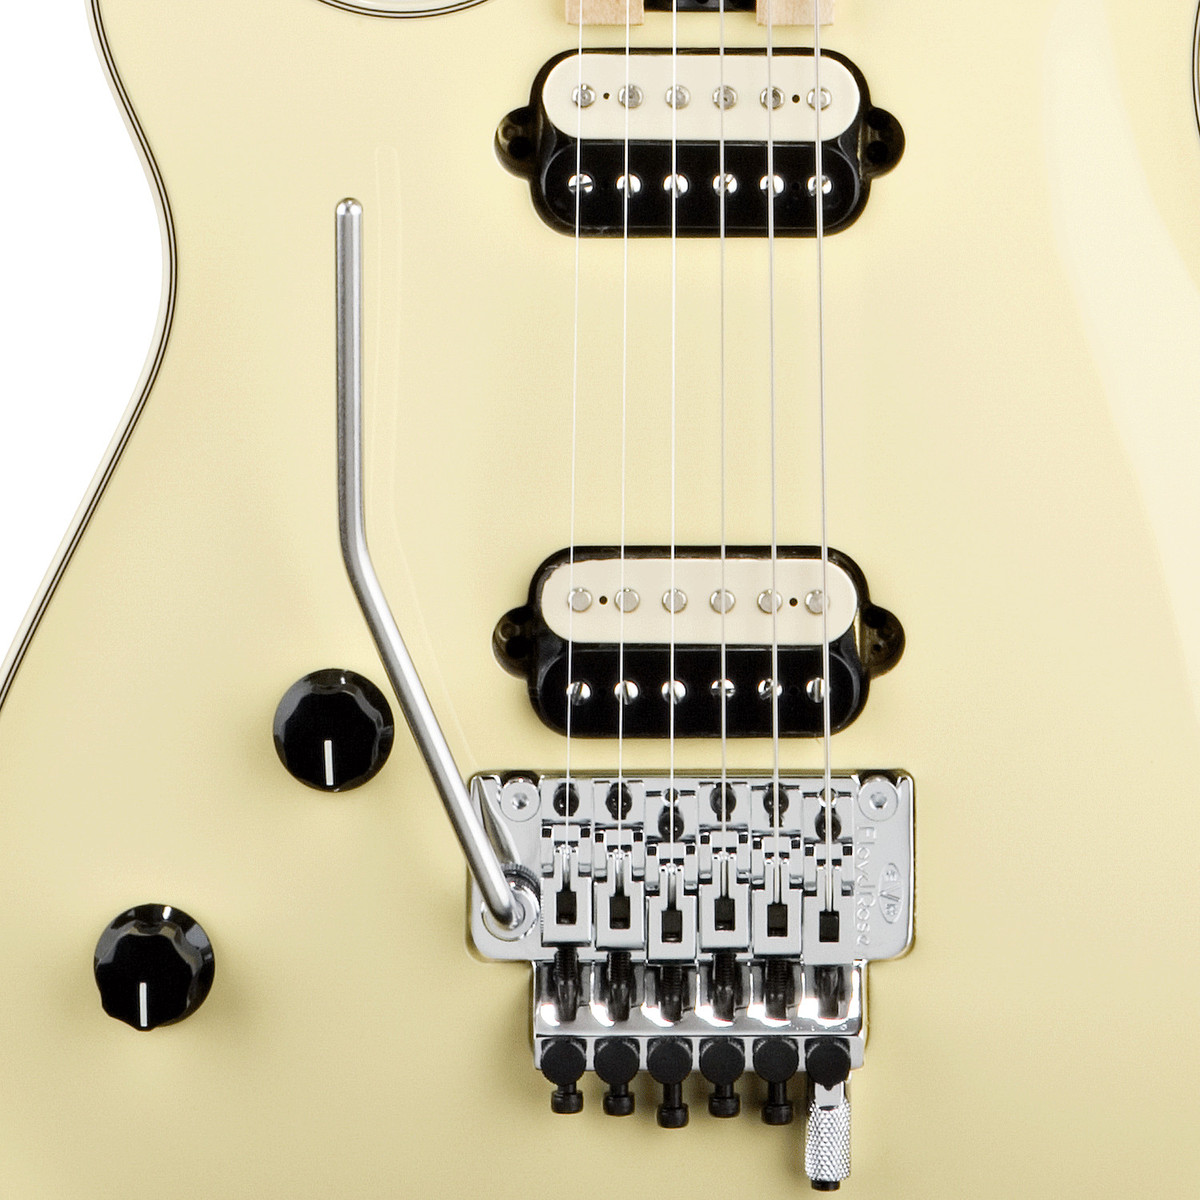 Disc Evh Wolfgang Usa Left Handed Electric Guitar Mn Vintage White Schaller 3way Switch Wiring Loading Zoom